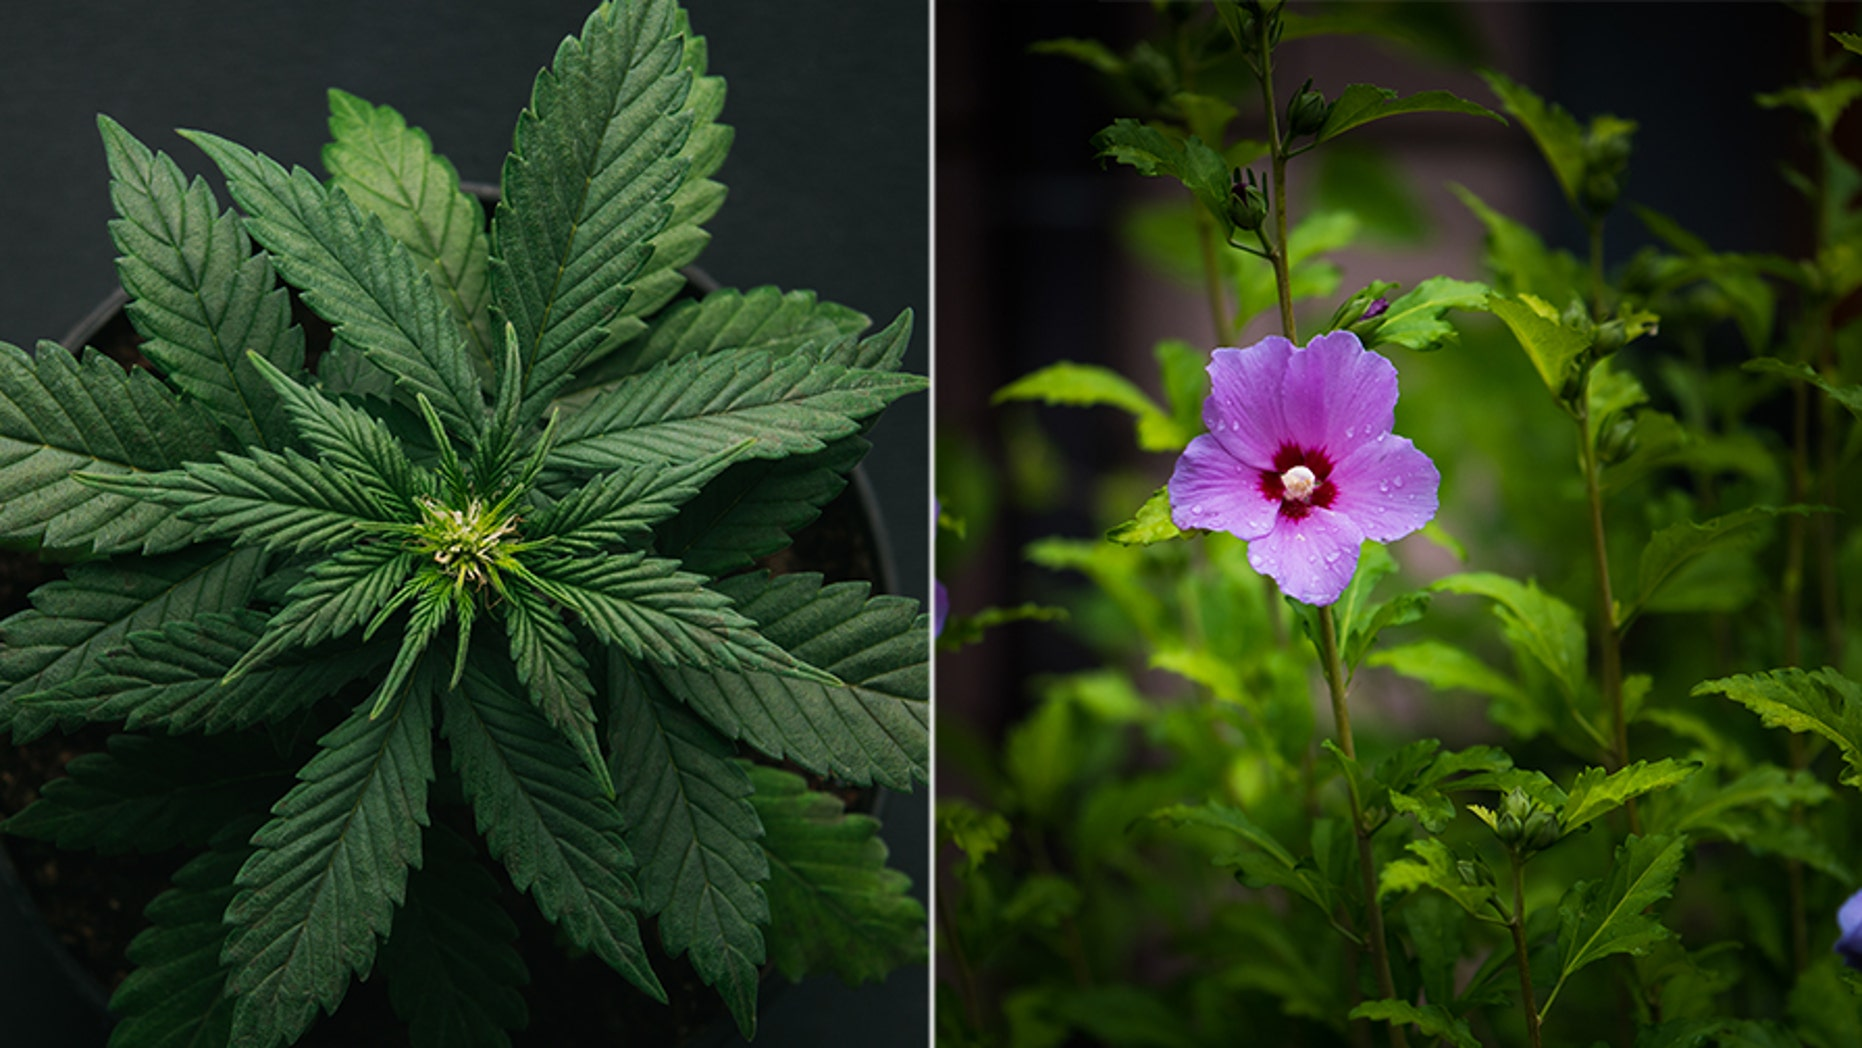 A couple in Pennsylvania claims they were handcuffed as police ransacked their home and claimed they found marijuana, which was really hibiscus plants.